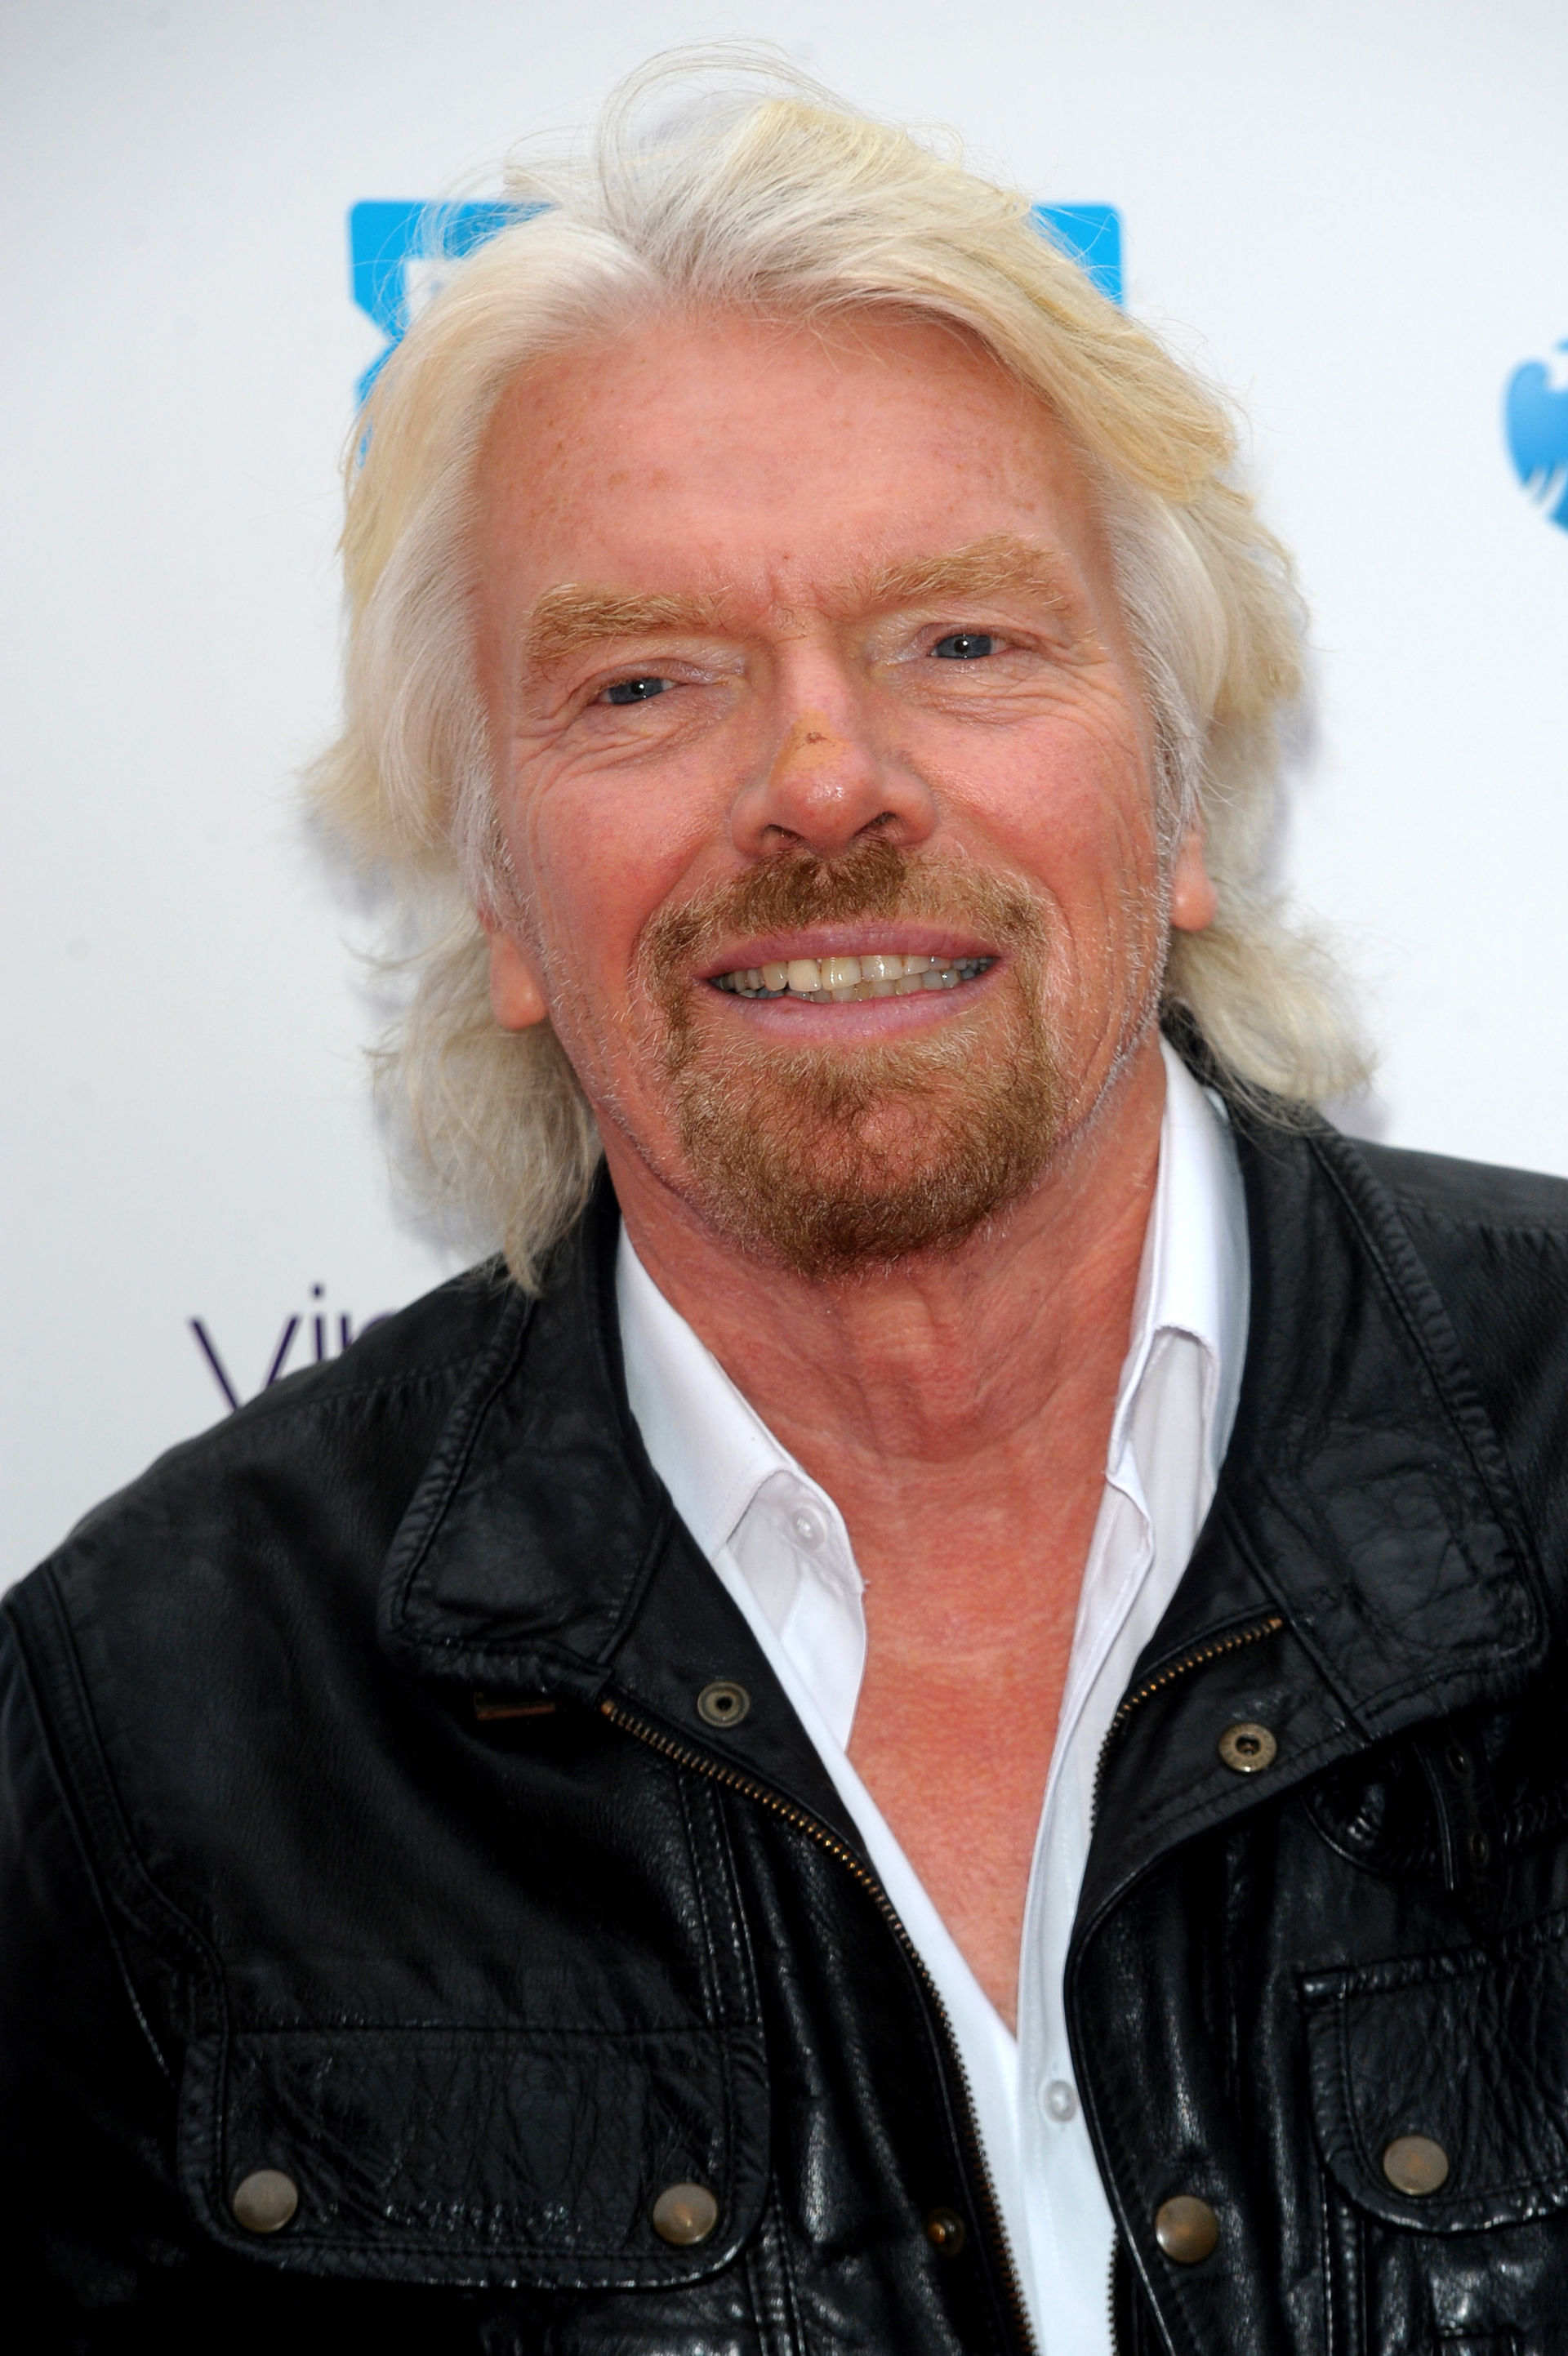 Richard Branson | Sheknows.ca